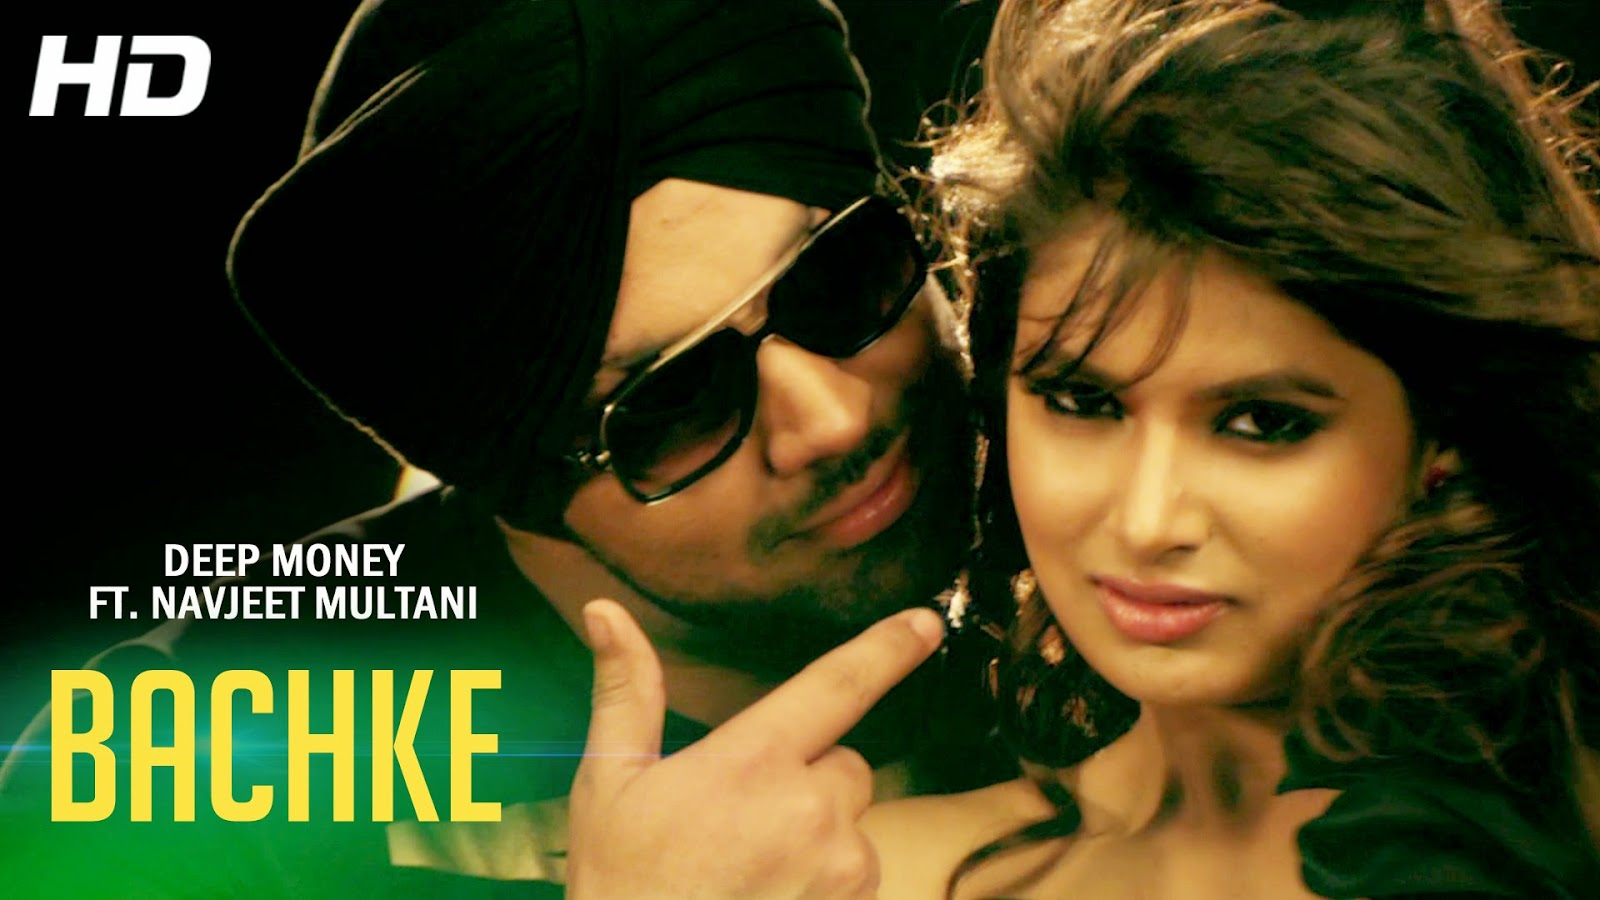 BACHKE SONG LYRICS & VIDEO | DEEP MONEY | NAVJEET MULTANI | NEW LATEST PUNJABI SONG LYRICS